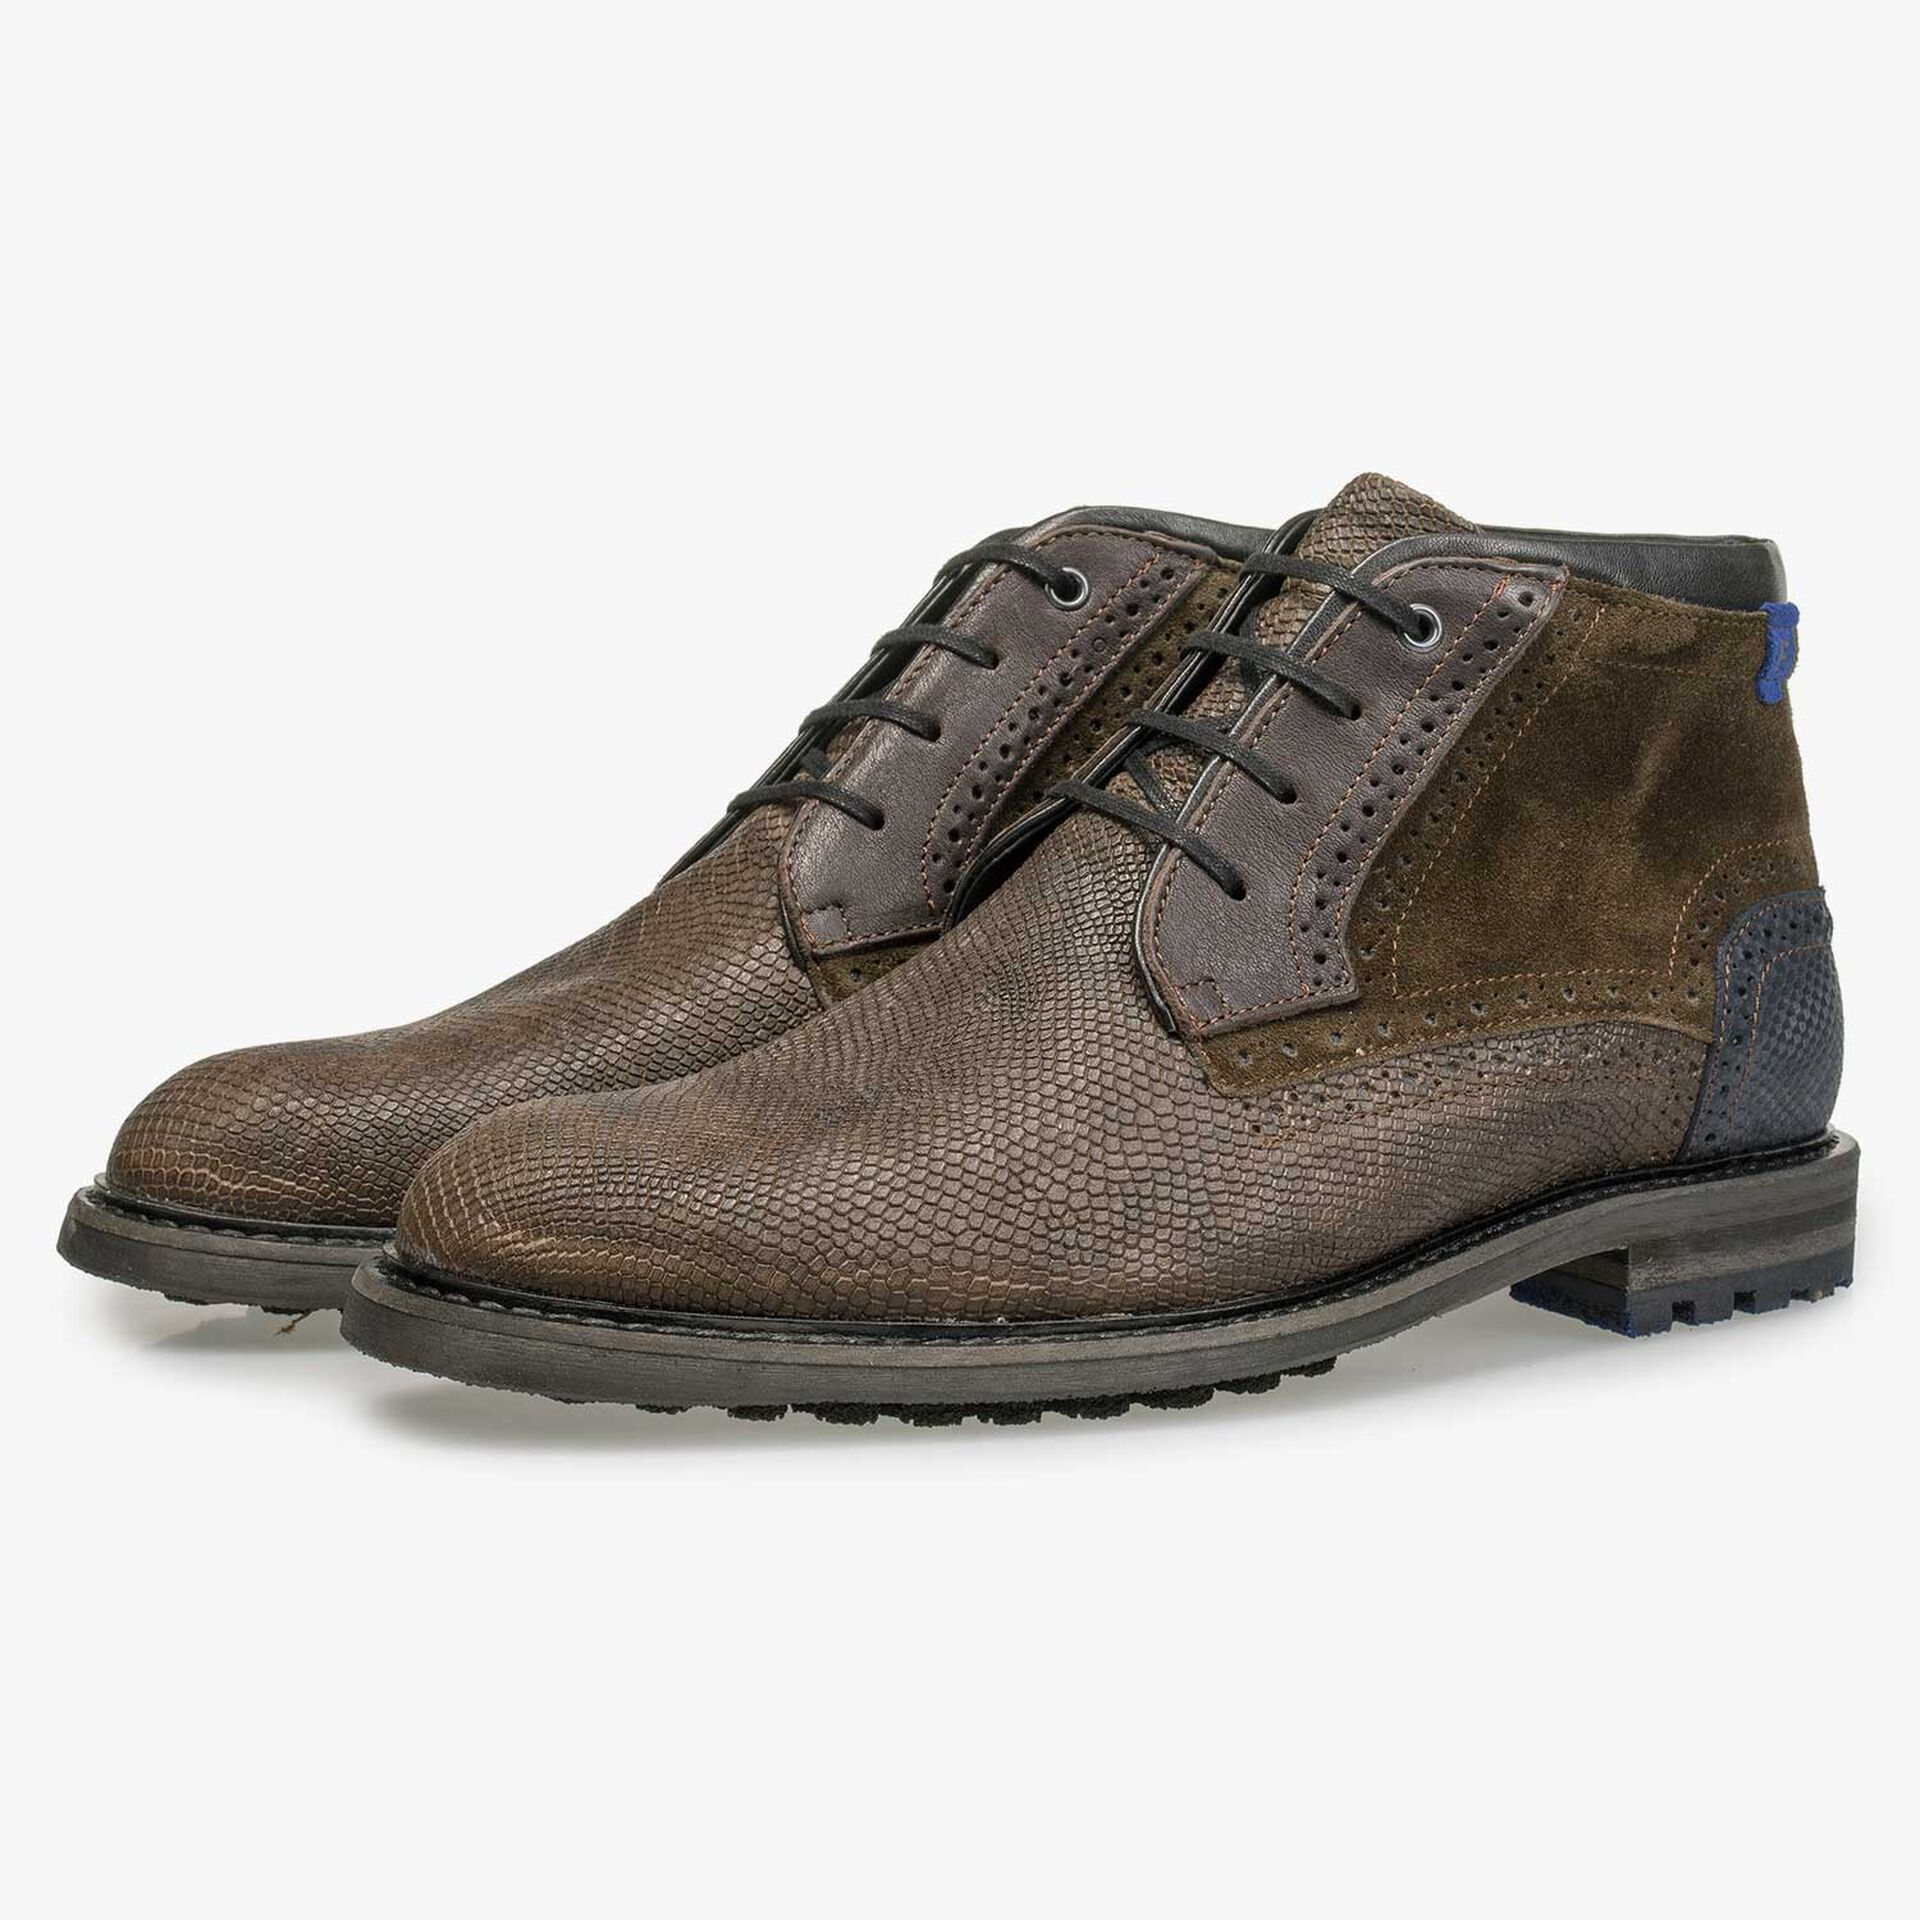 Brown nubuck leather lace boot with structural pattern